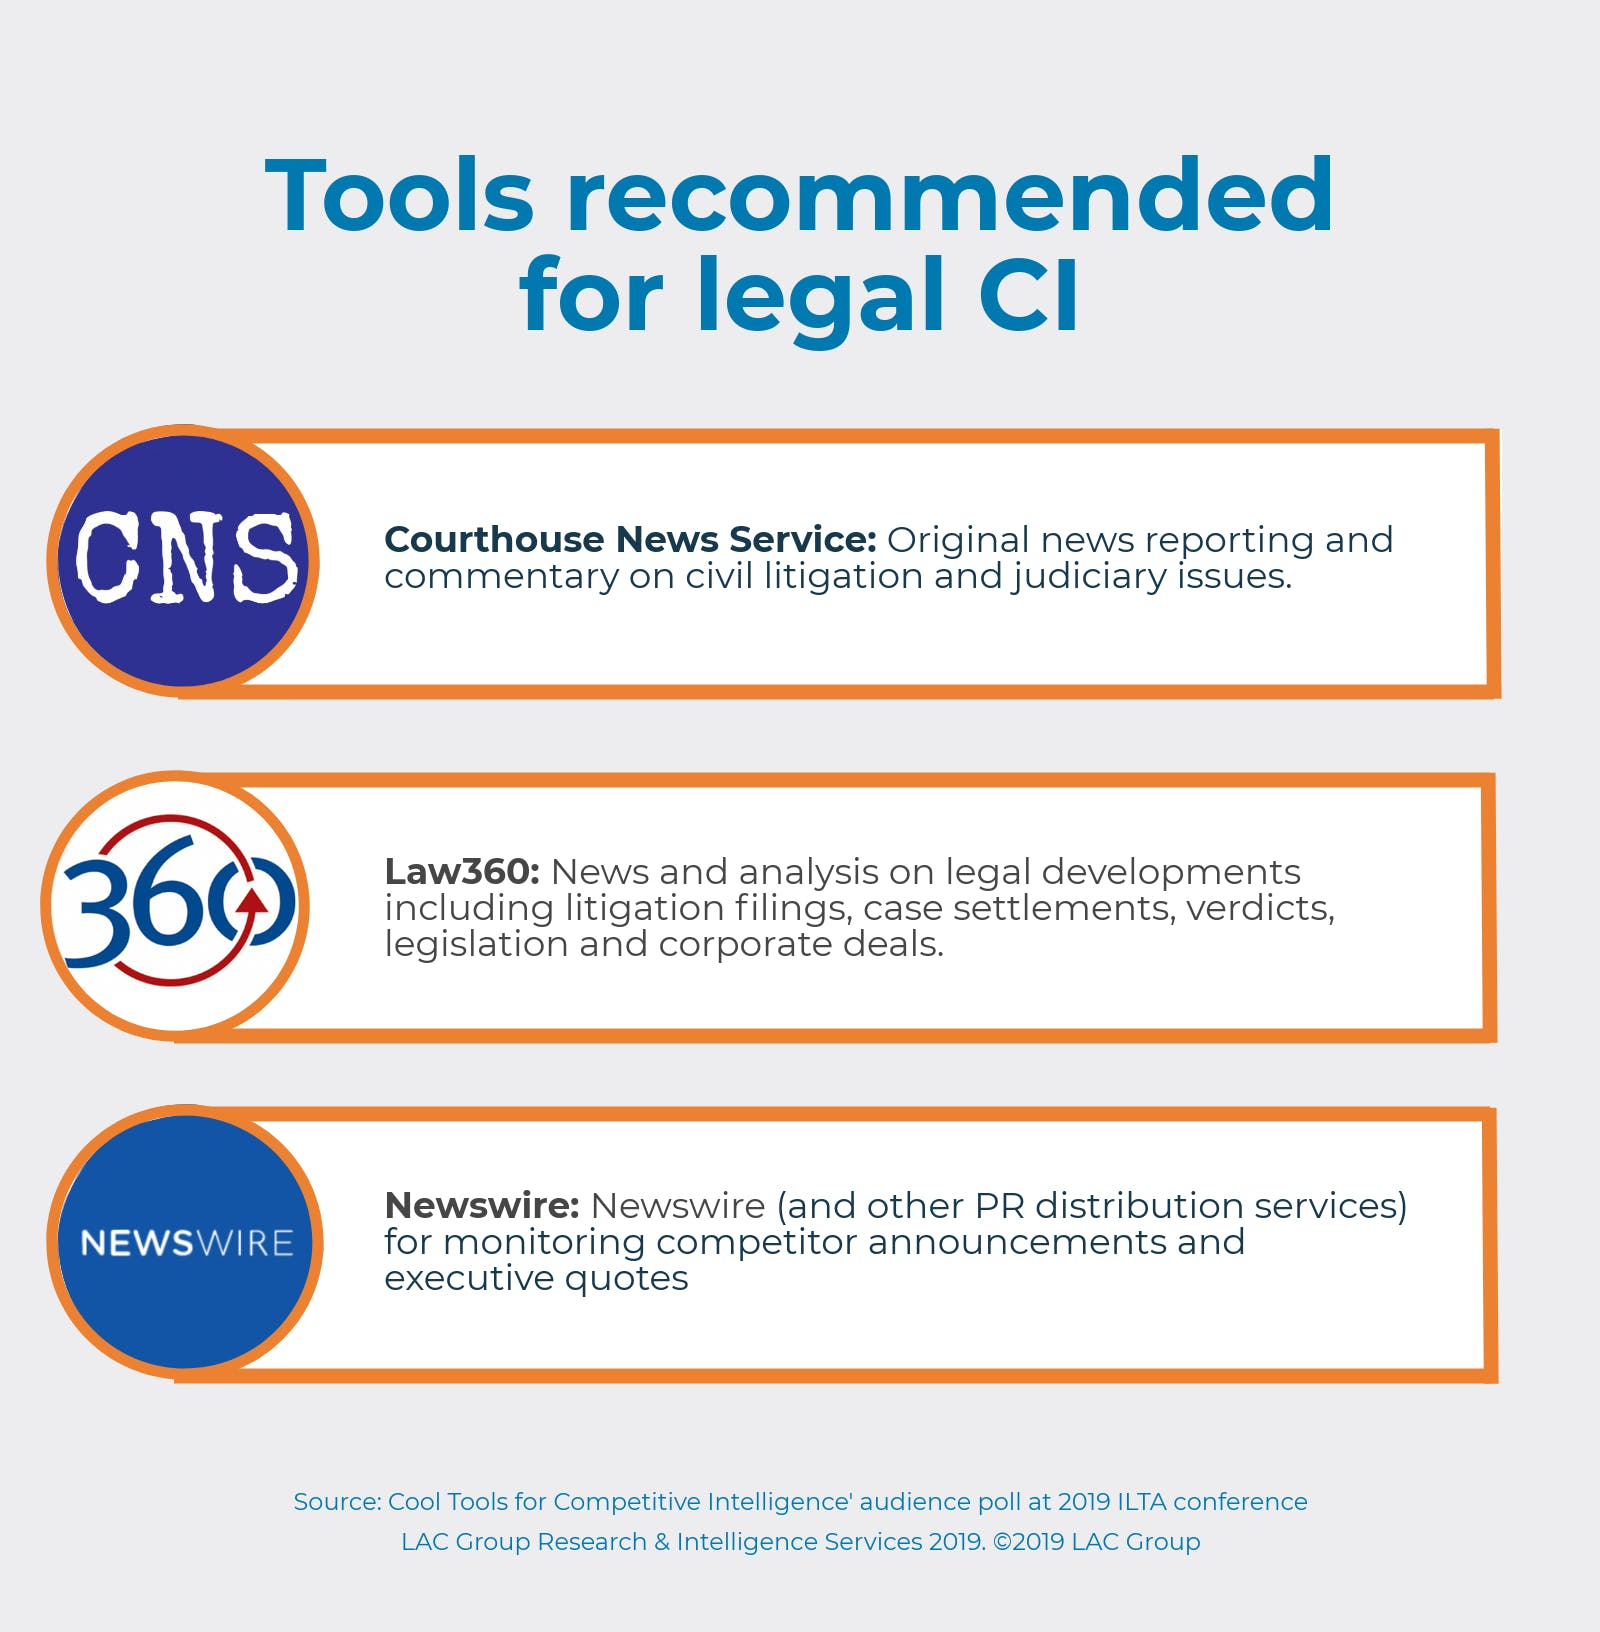 Tools recommended for legal CI